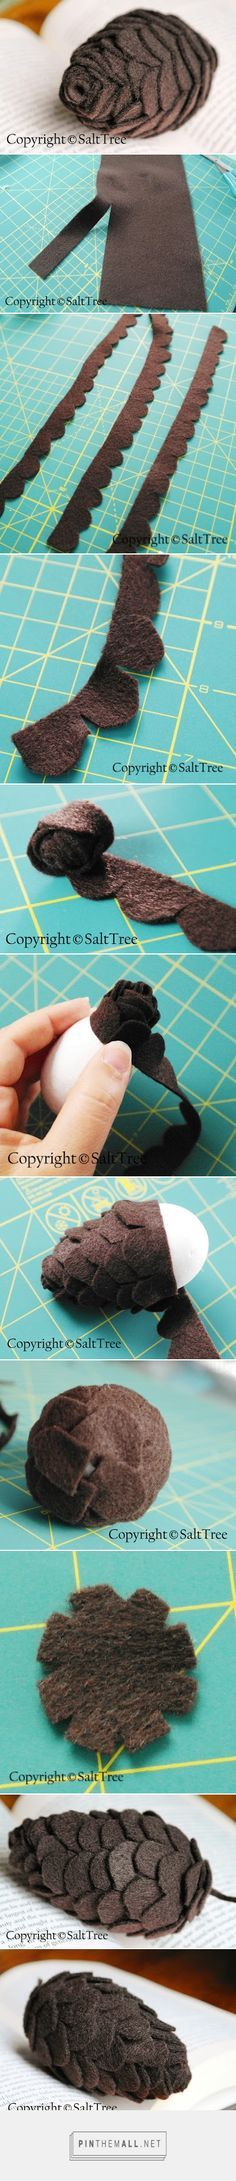 Felt Pinecone Tutorial – Victor - created via http://pinthemall.net